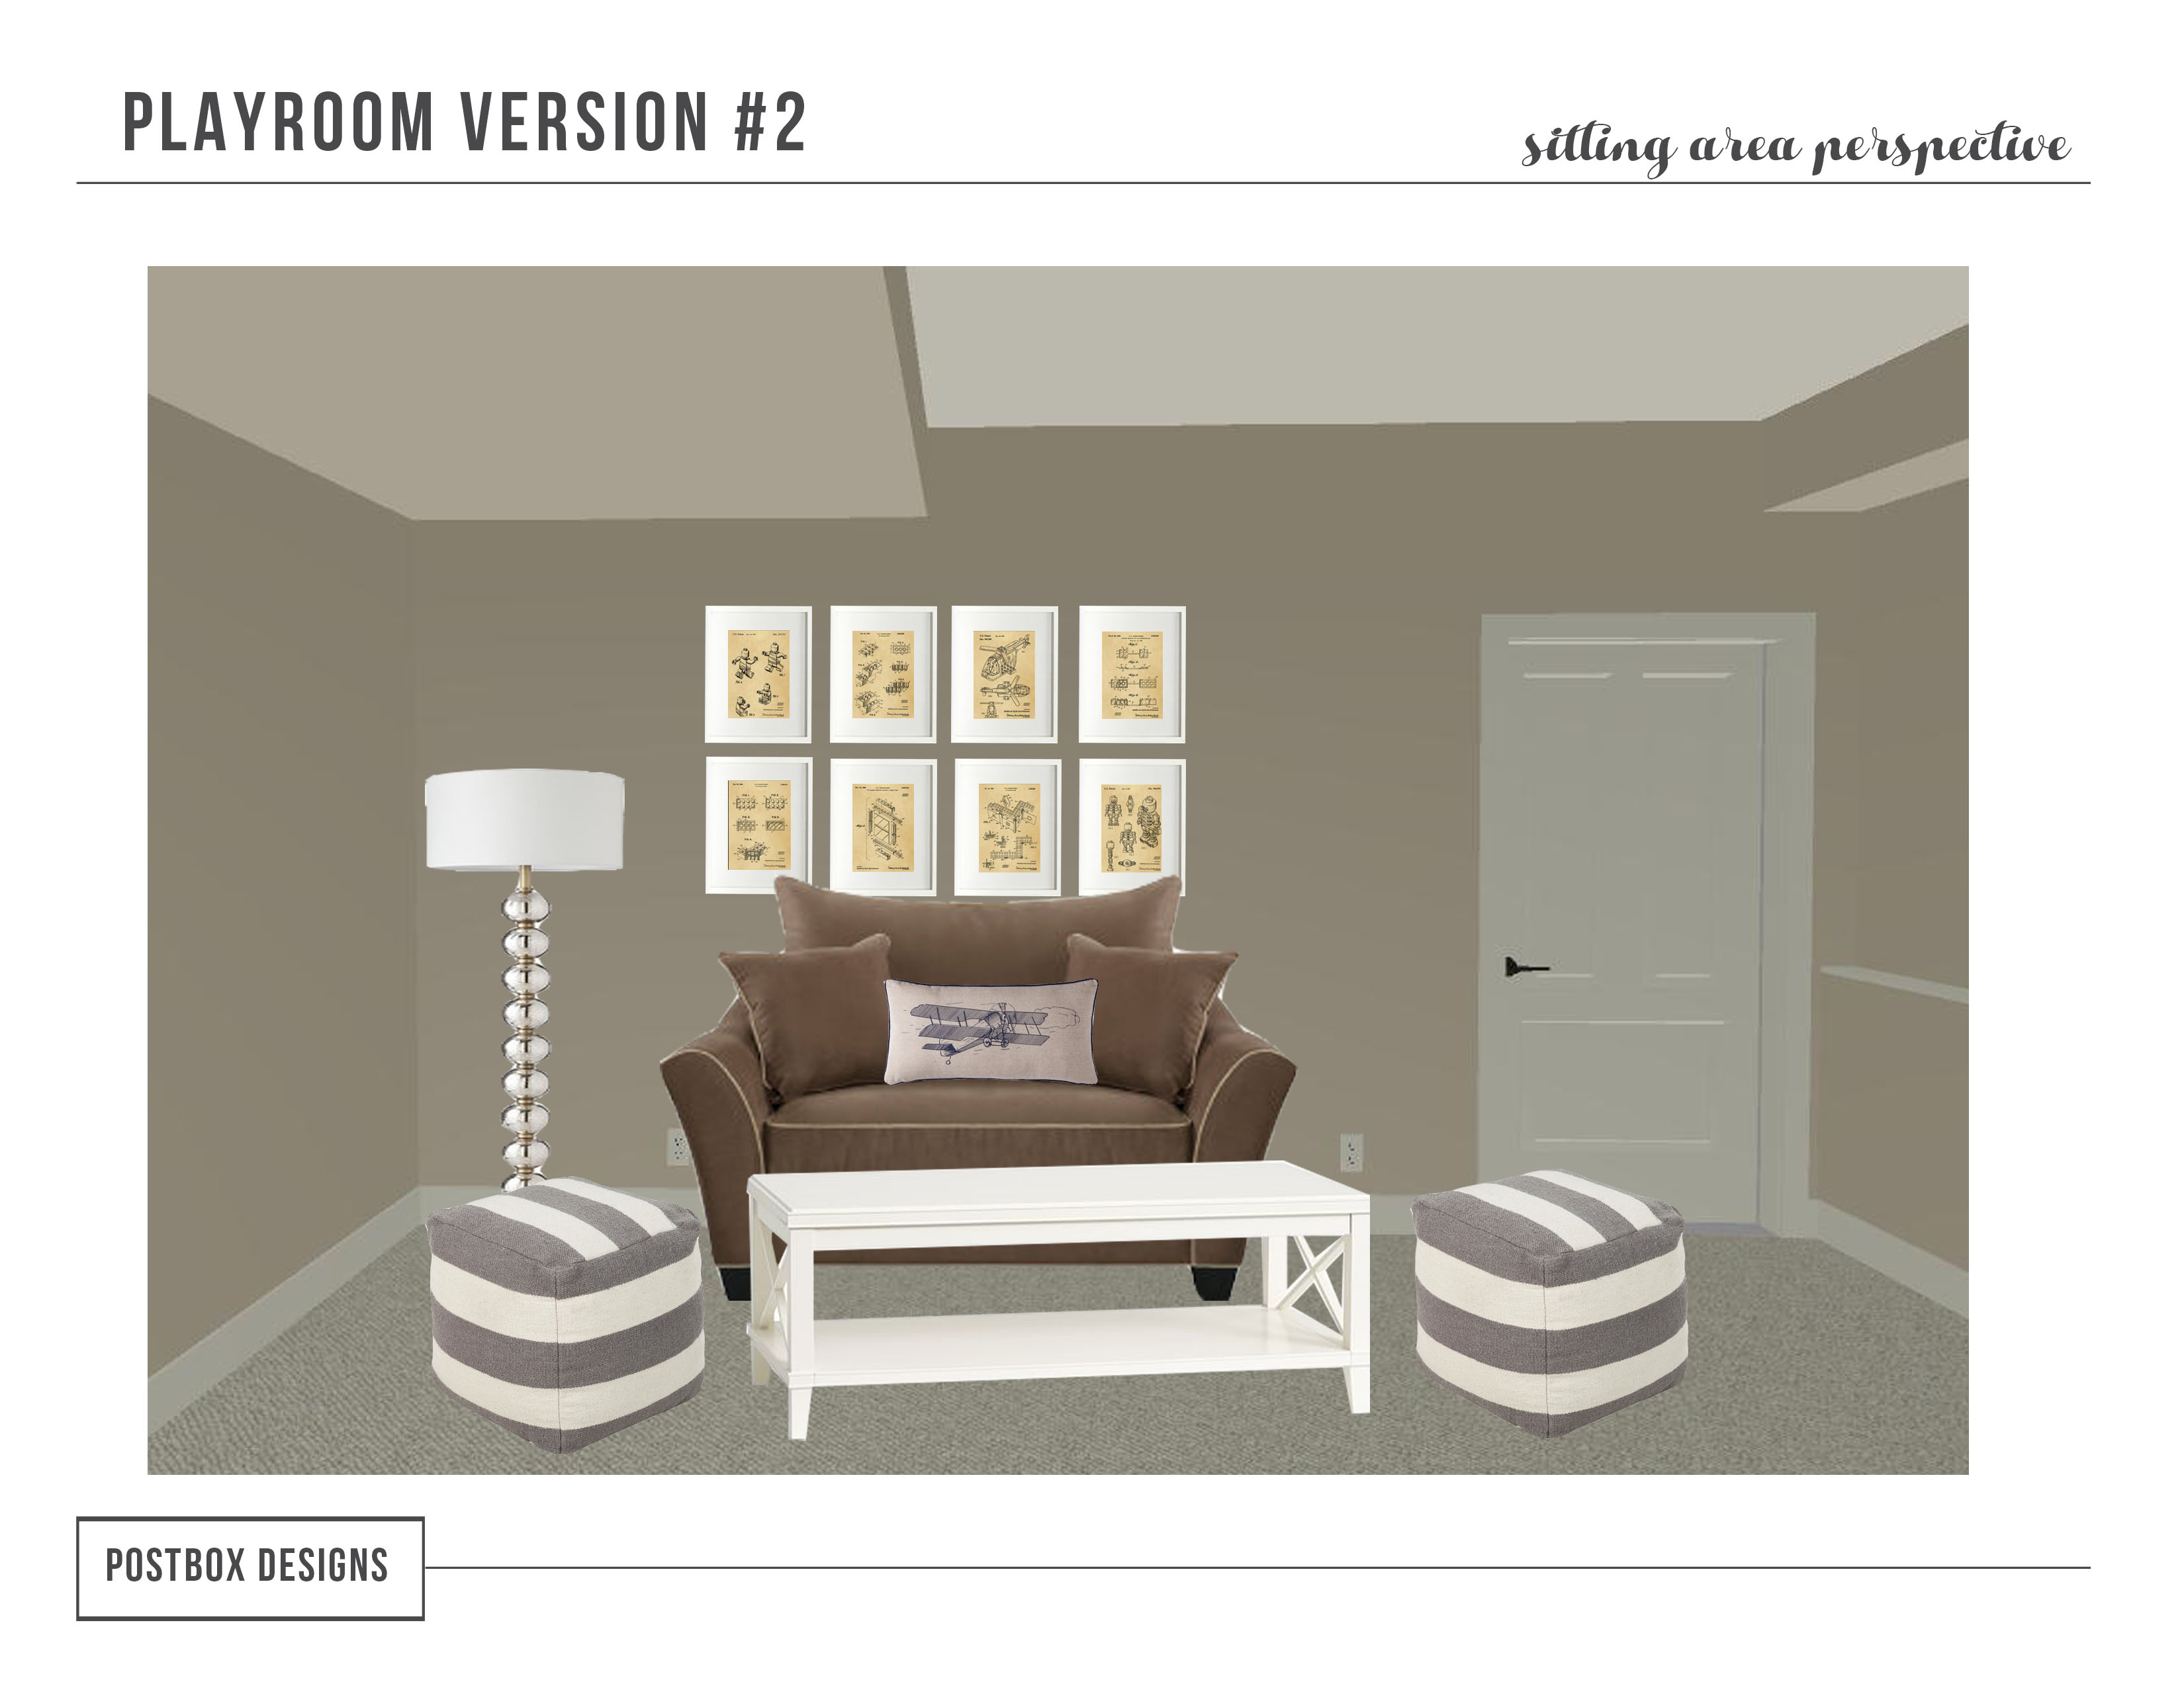 Ultimate Playroom Guide by Postbox Designs - Postbox Designs